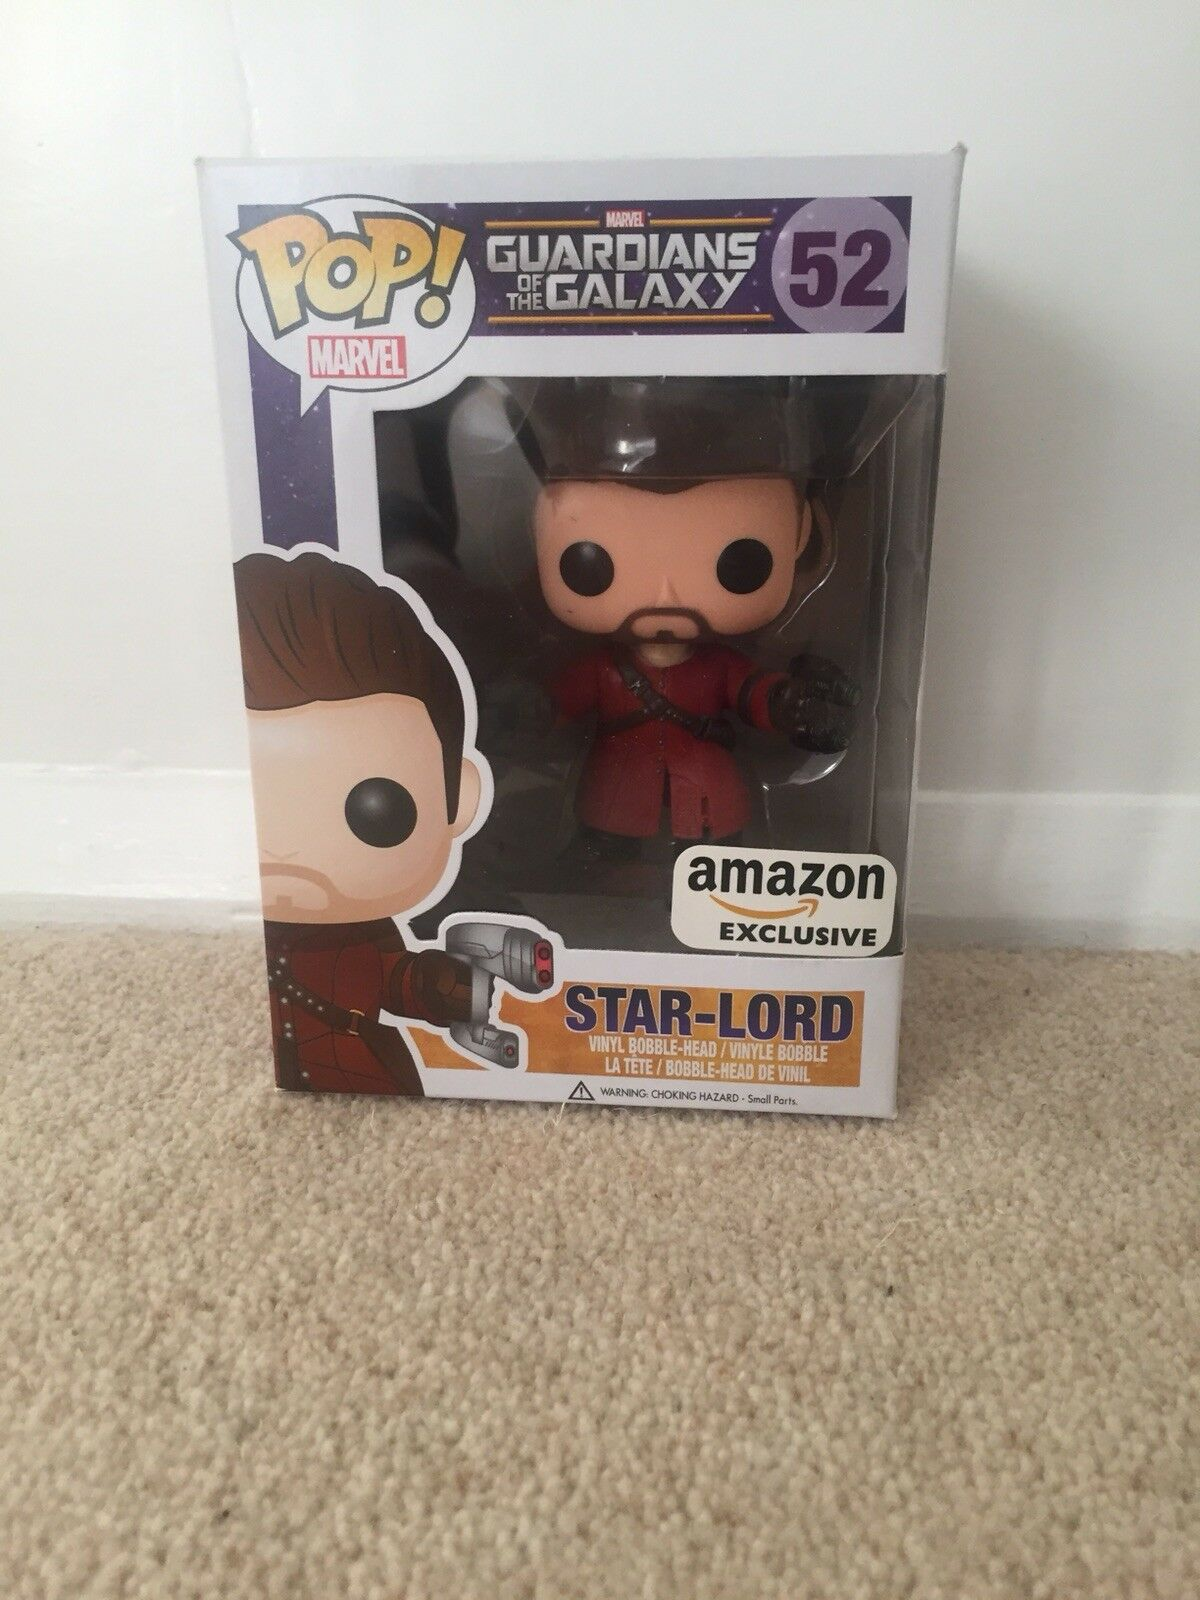 GUARDIANS OF THE GALAXY STAR-LORD UNMASKED POP VINYL FIGURE EXCLUSIVE